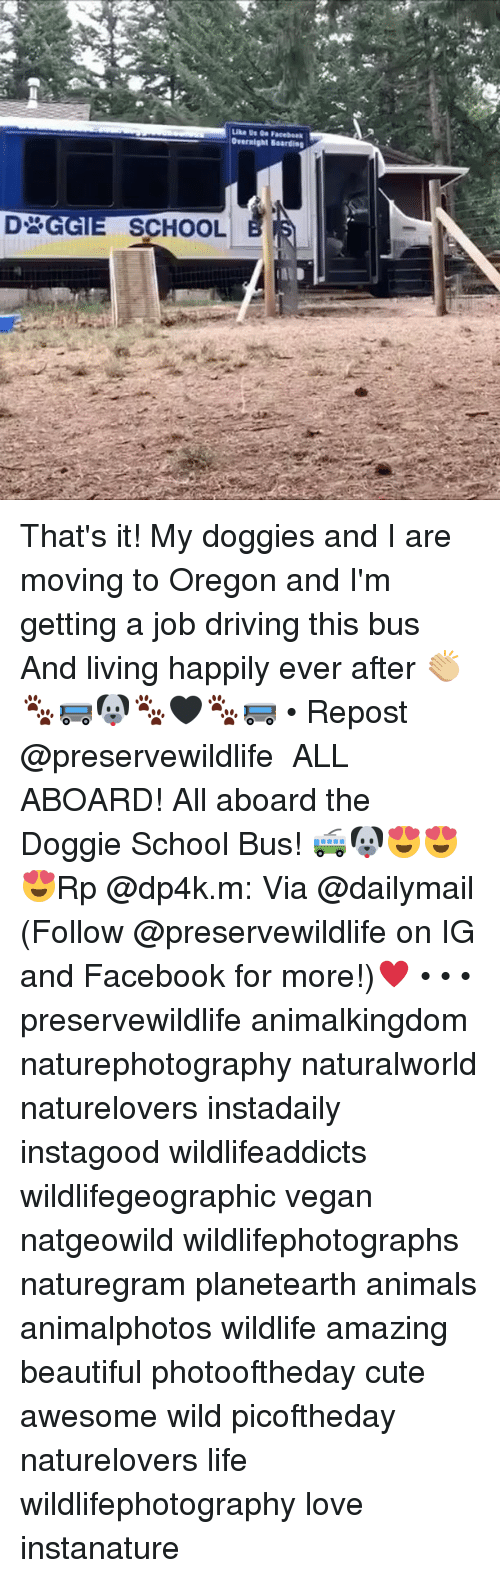 Getting A Job: Overnight Boardieg  SCHOOL That's it! My doggies and I are moving to Oregon and I'm getting a job driving this bus And living happily ever after 👏🏼🐾🚌🐶🐾🖤🐾🚌 • Repost @preservewildlife ・・・ ALL ABOARD! All aboard the Doggie School Bus! 🚎🐶😍😍😍Rp @dp4k.m: Via @dailymail (Follow @preservewildlife on IG and Facebook for more!)♥️ • • • preservewildlife animalkingdom naturephotography naturalworld naturelovers instadaily instagood wildlifeaddicts wildlifegeographic vegan natgeowild wildlifephotographs naturegram planetearth animals animalphotos wildlife amazing beautiful photooftheday cute awesome wild picoftheday naturelovers life wildlifephotography love instanature